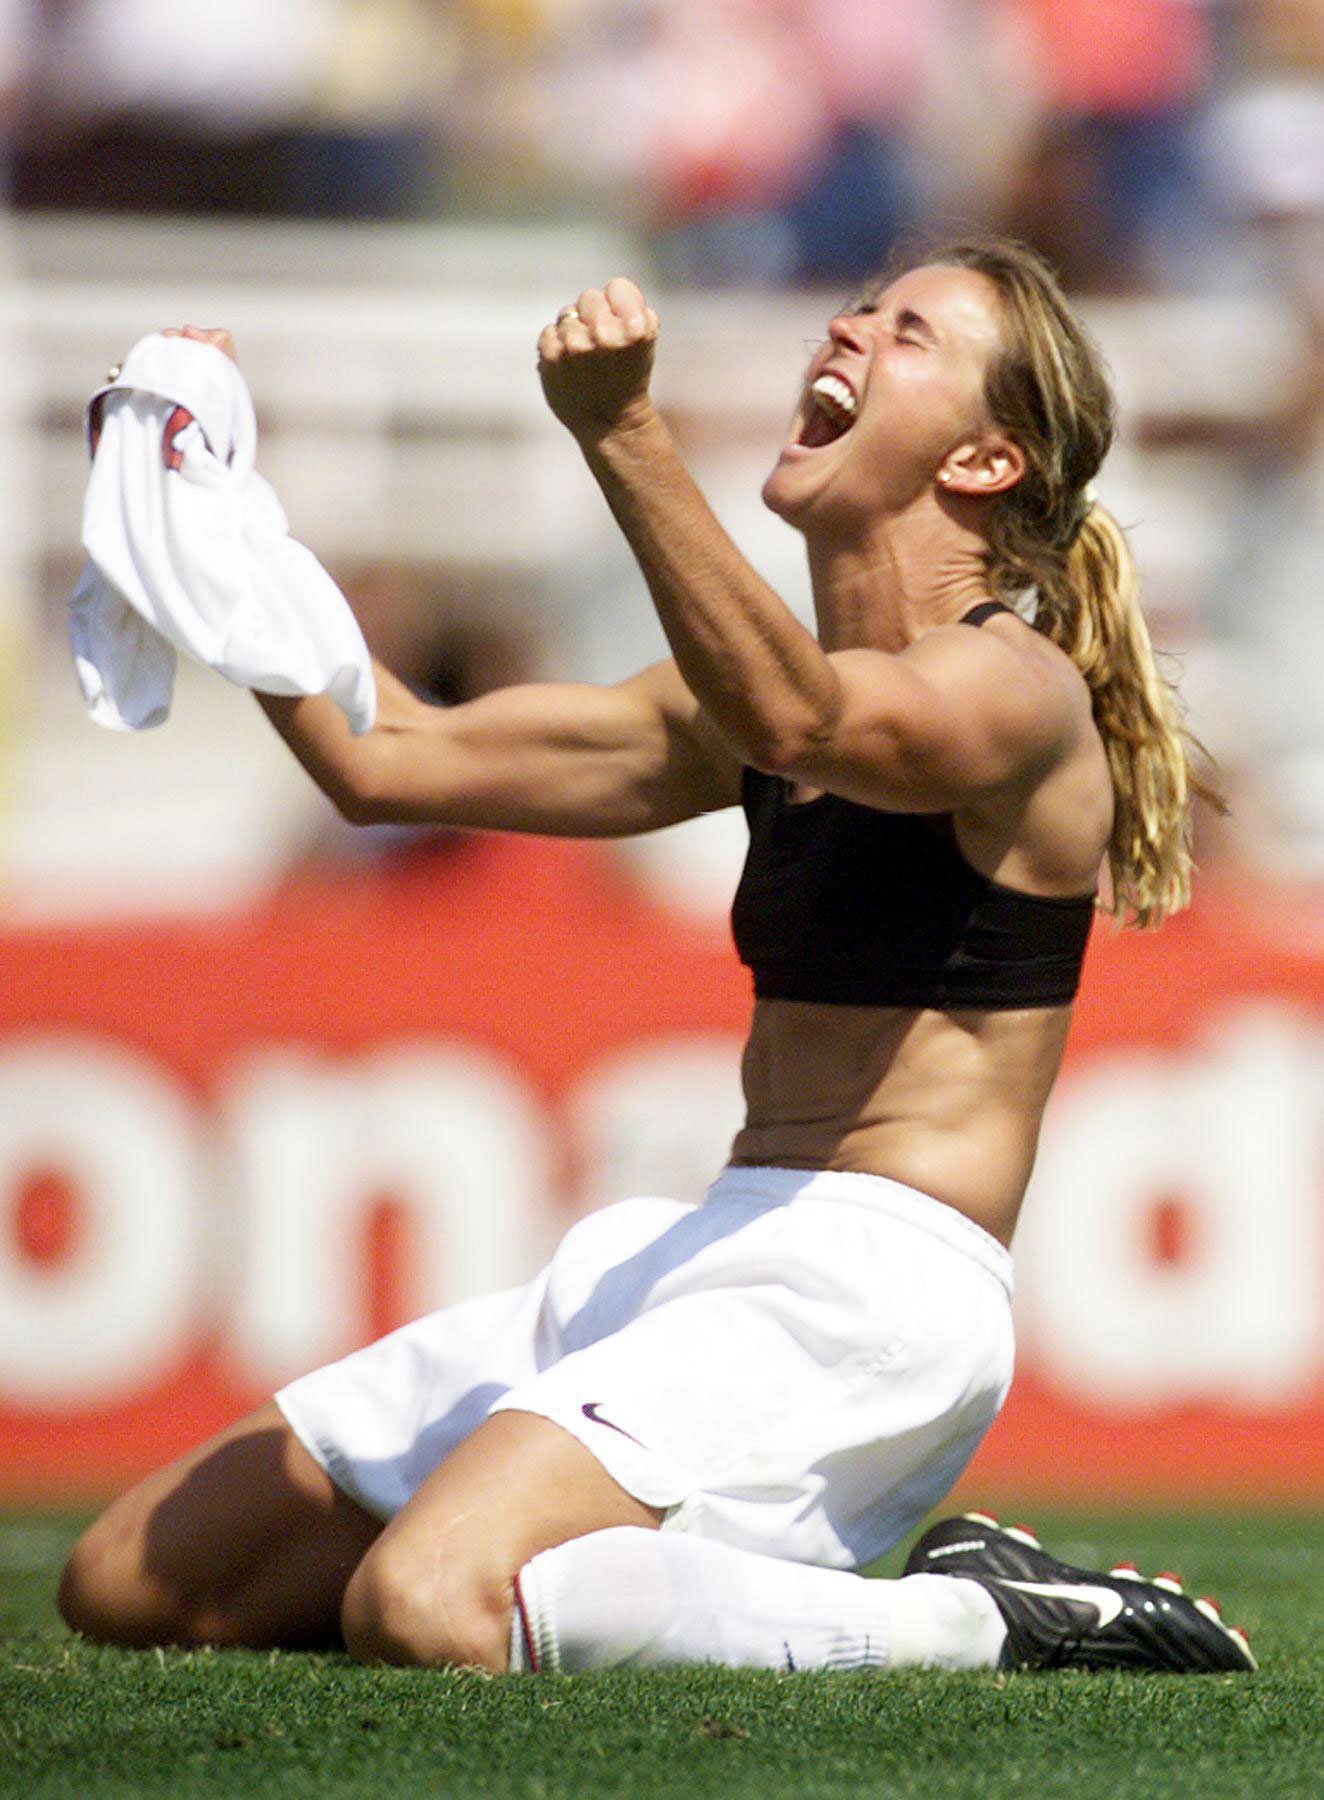 Brandi Chastain's Women's World Cup Bra After scoring the winning penalty kick against China in the 1999 Women's World Cup, Chastain took off her jersey and dropped to her knees in a now historic moment of celebration. The move landed her on the cover of both Sports Illustrated and Newsweek.